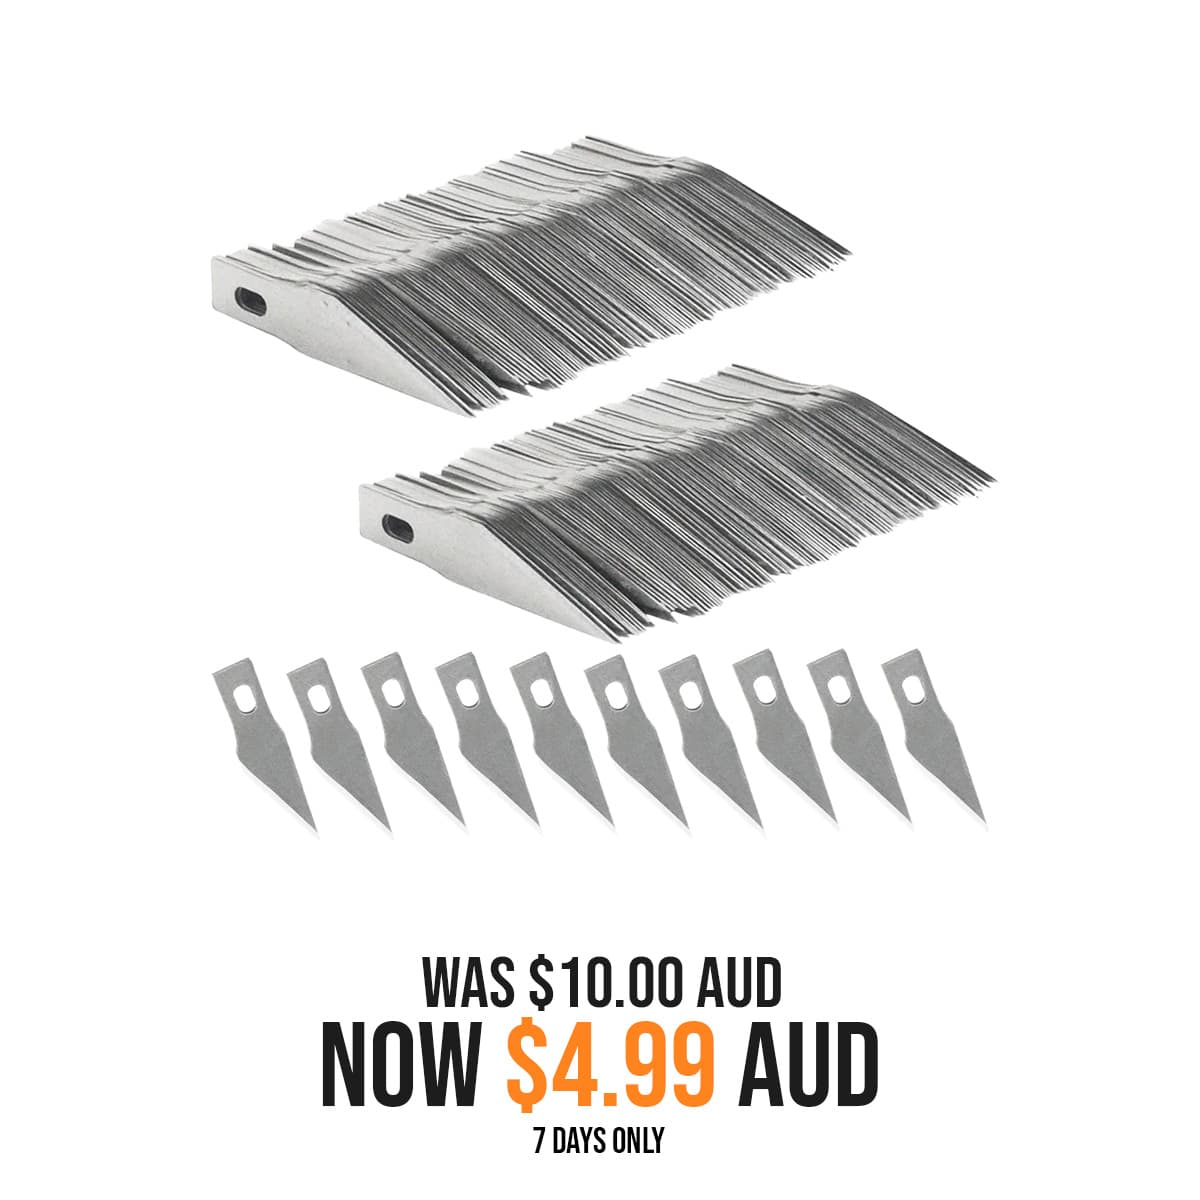 replacement blades for xacto knife australia architecture 2-min